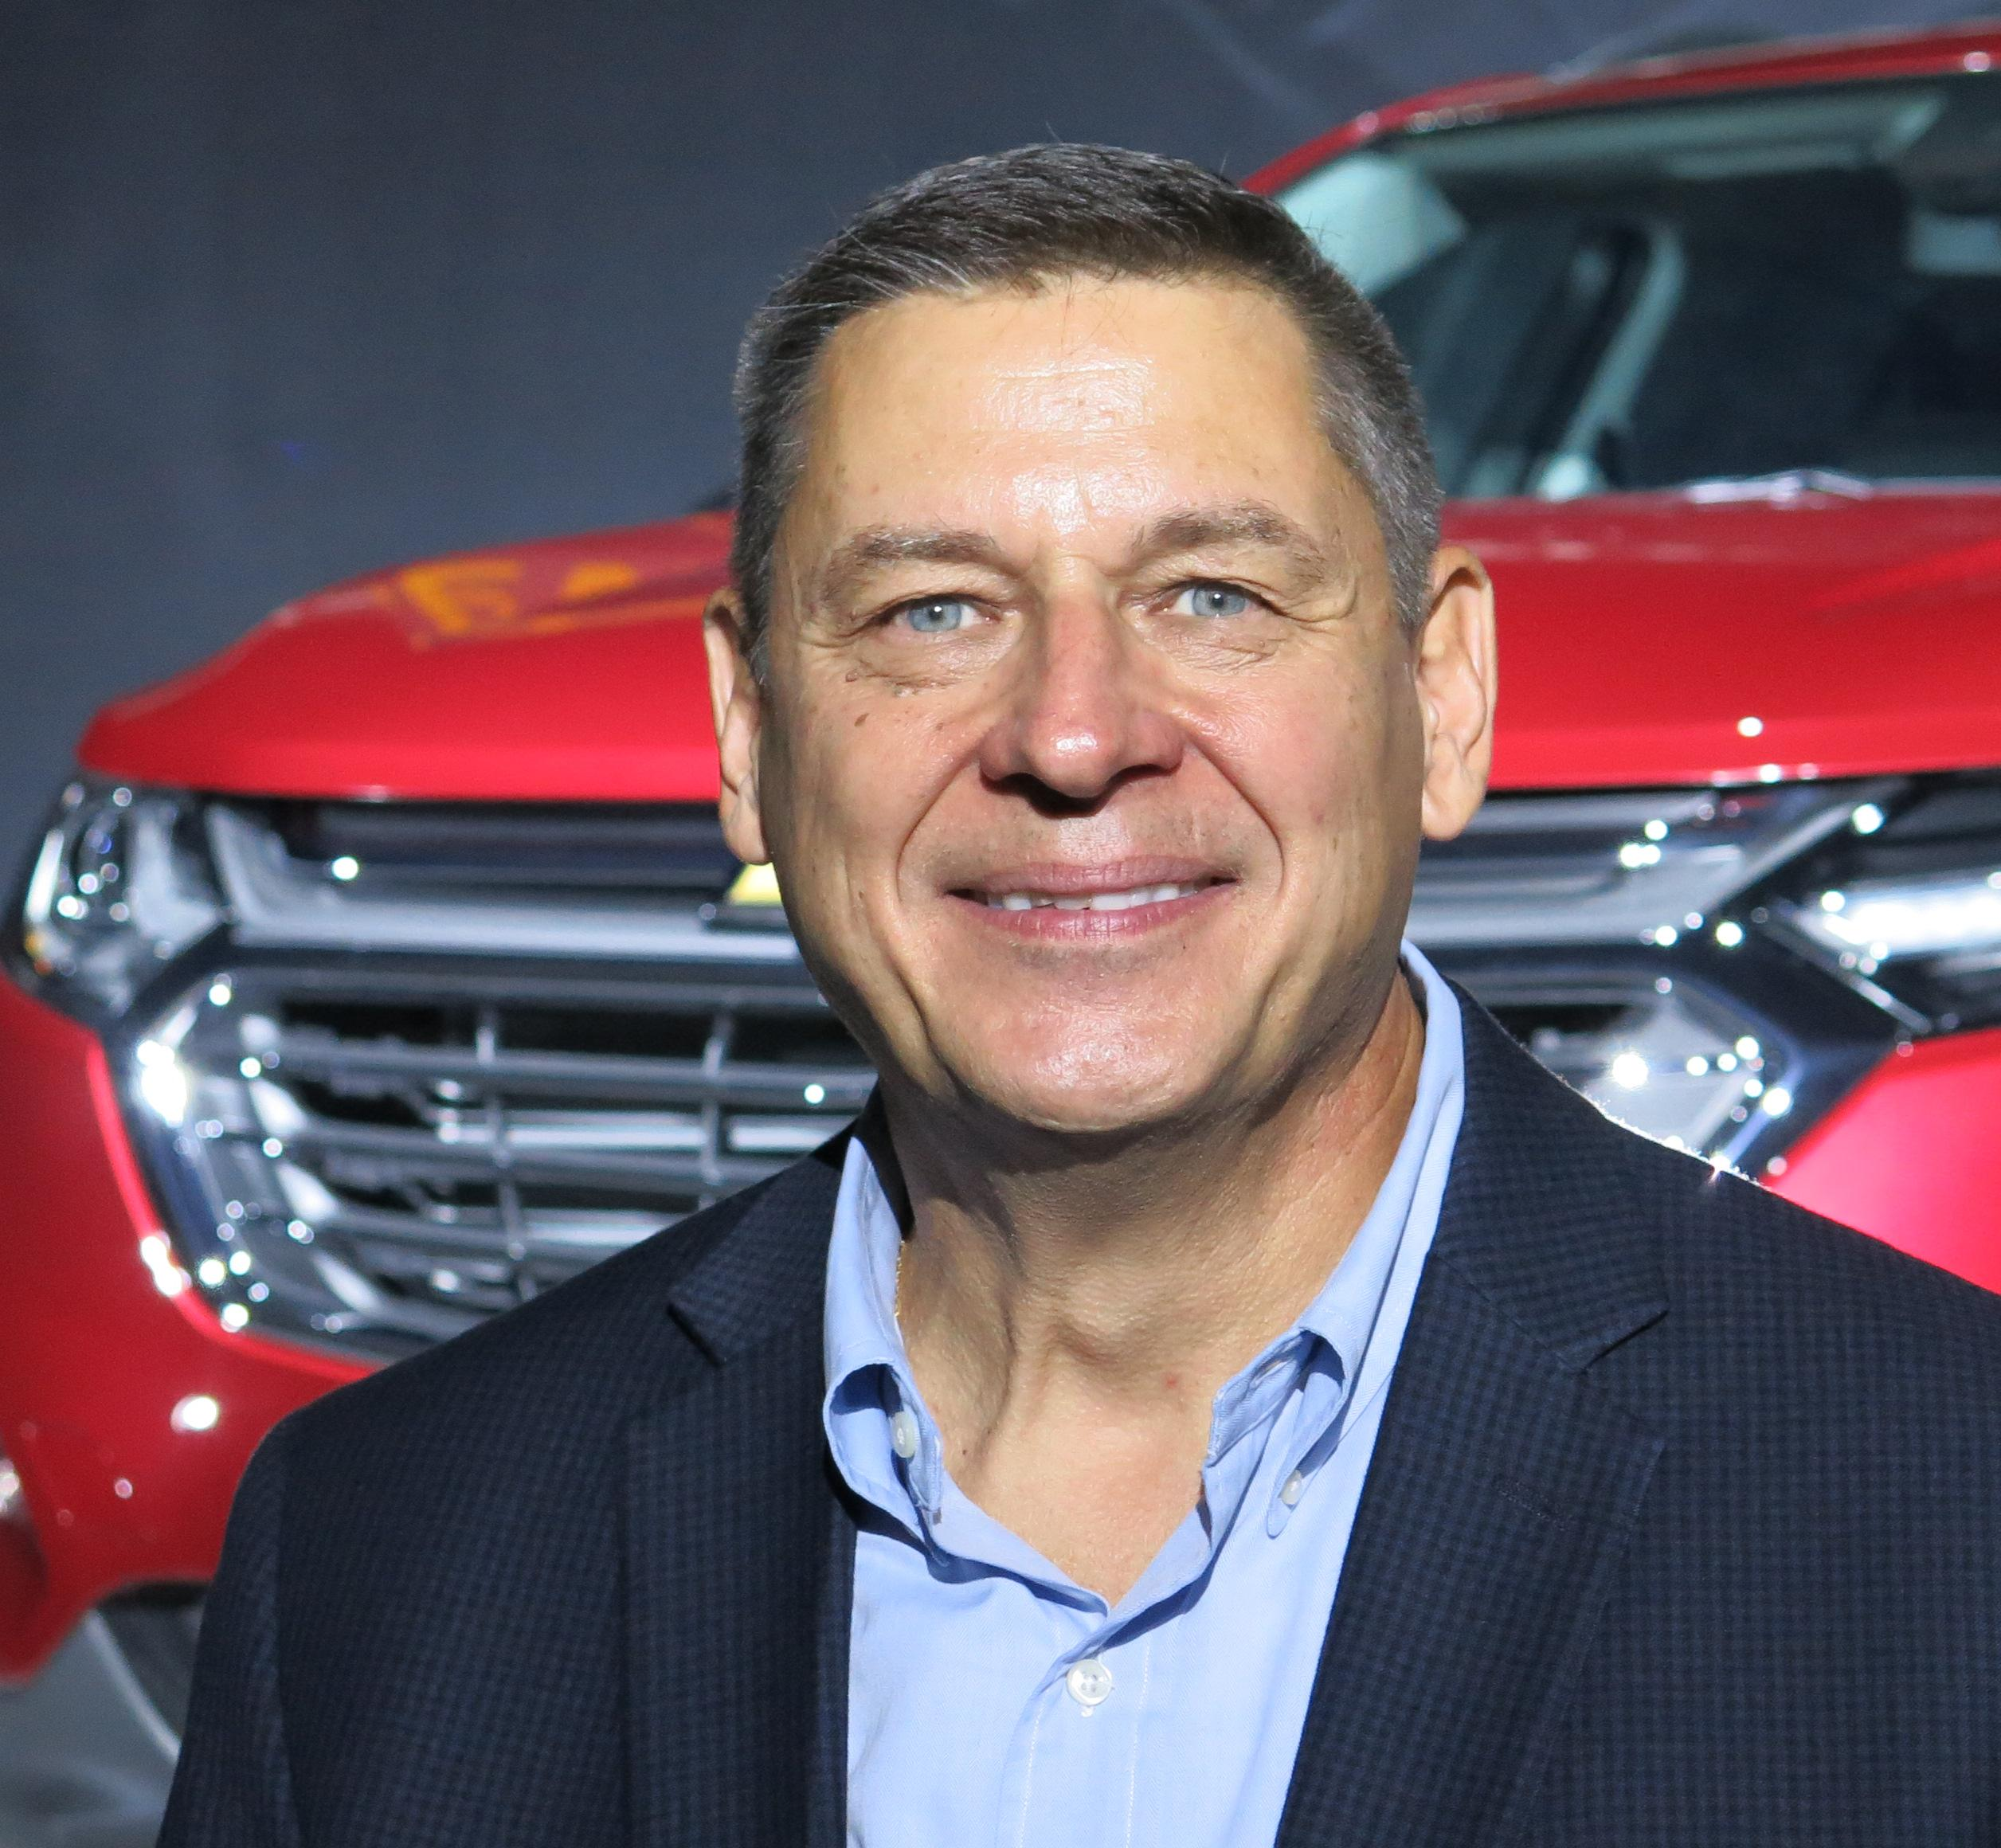 Engineering Chevy's Lighter, Stronger CUV